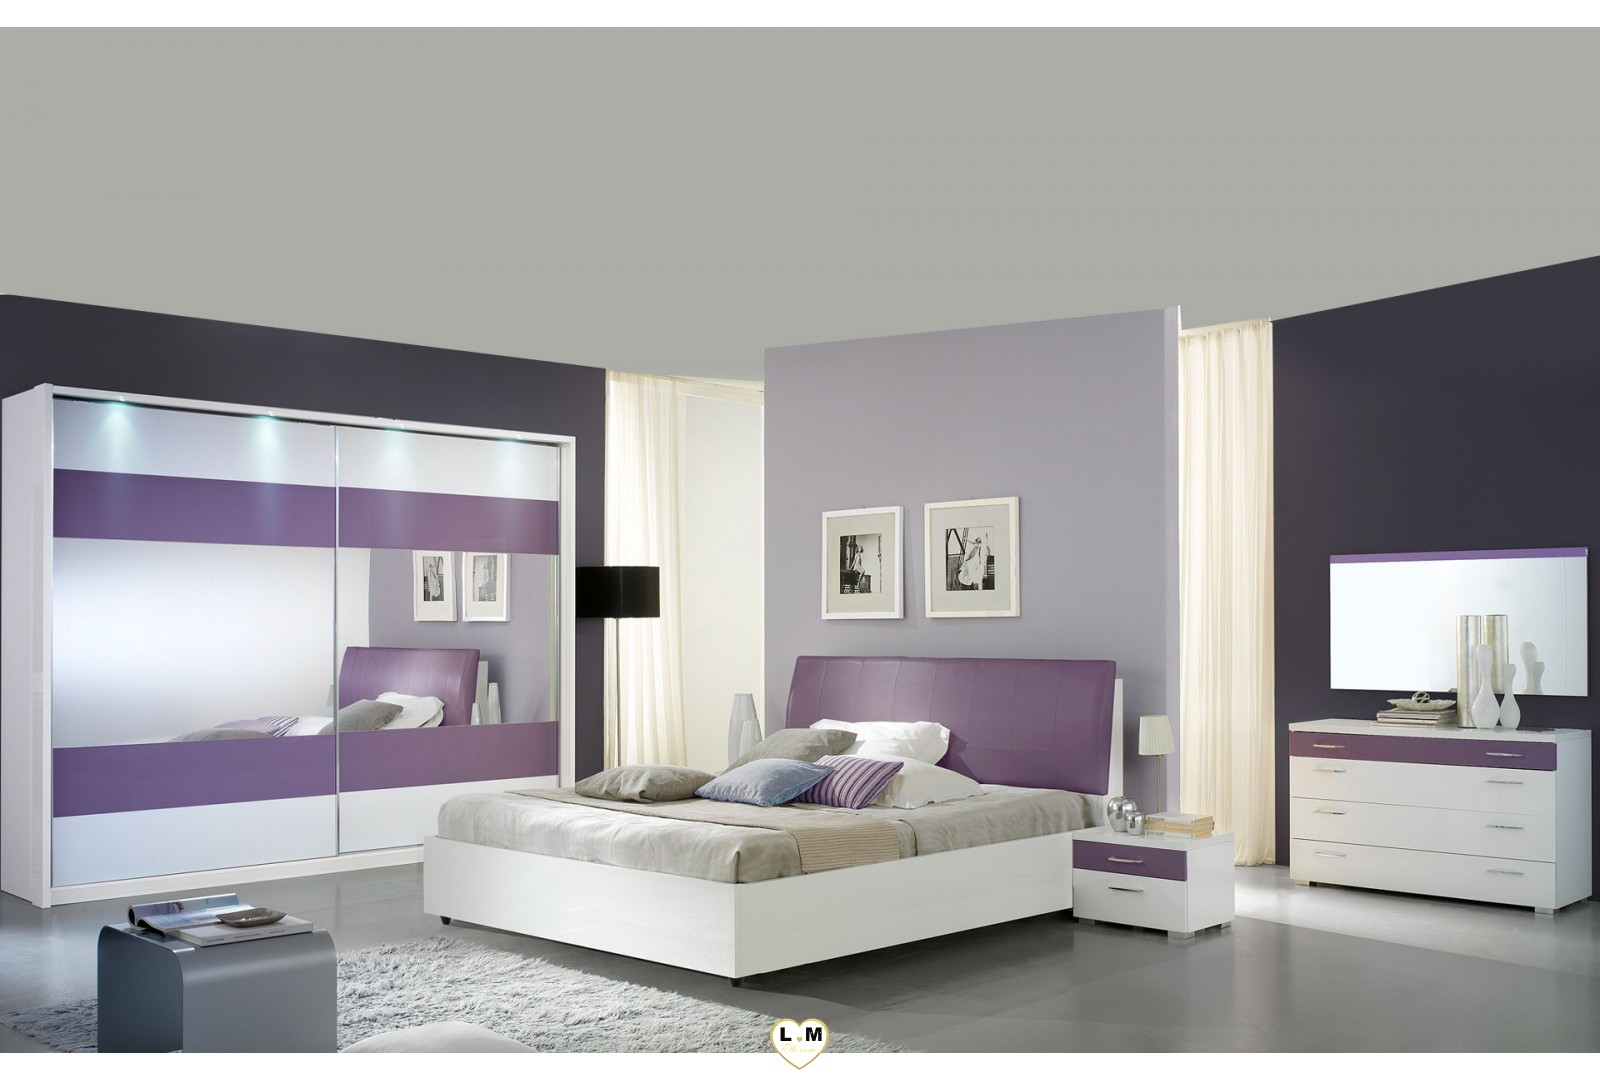 chambre violet et beige chambre with chambre violet et beige fabulous emejing chambre a. Black Bedroom Furniture Sets. Home Design Ideas